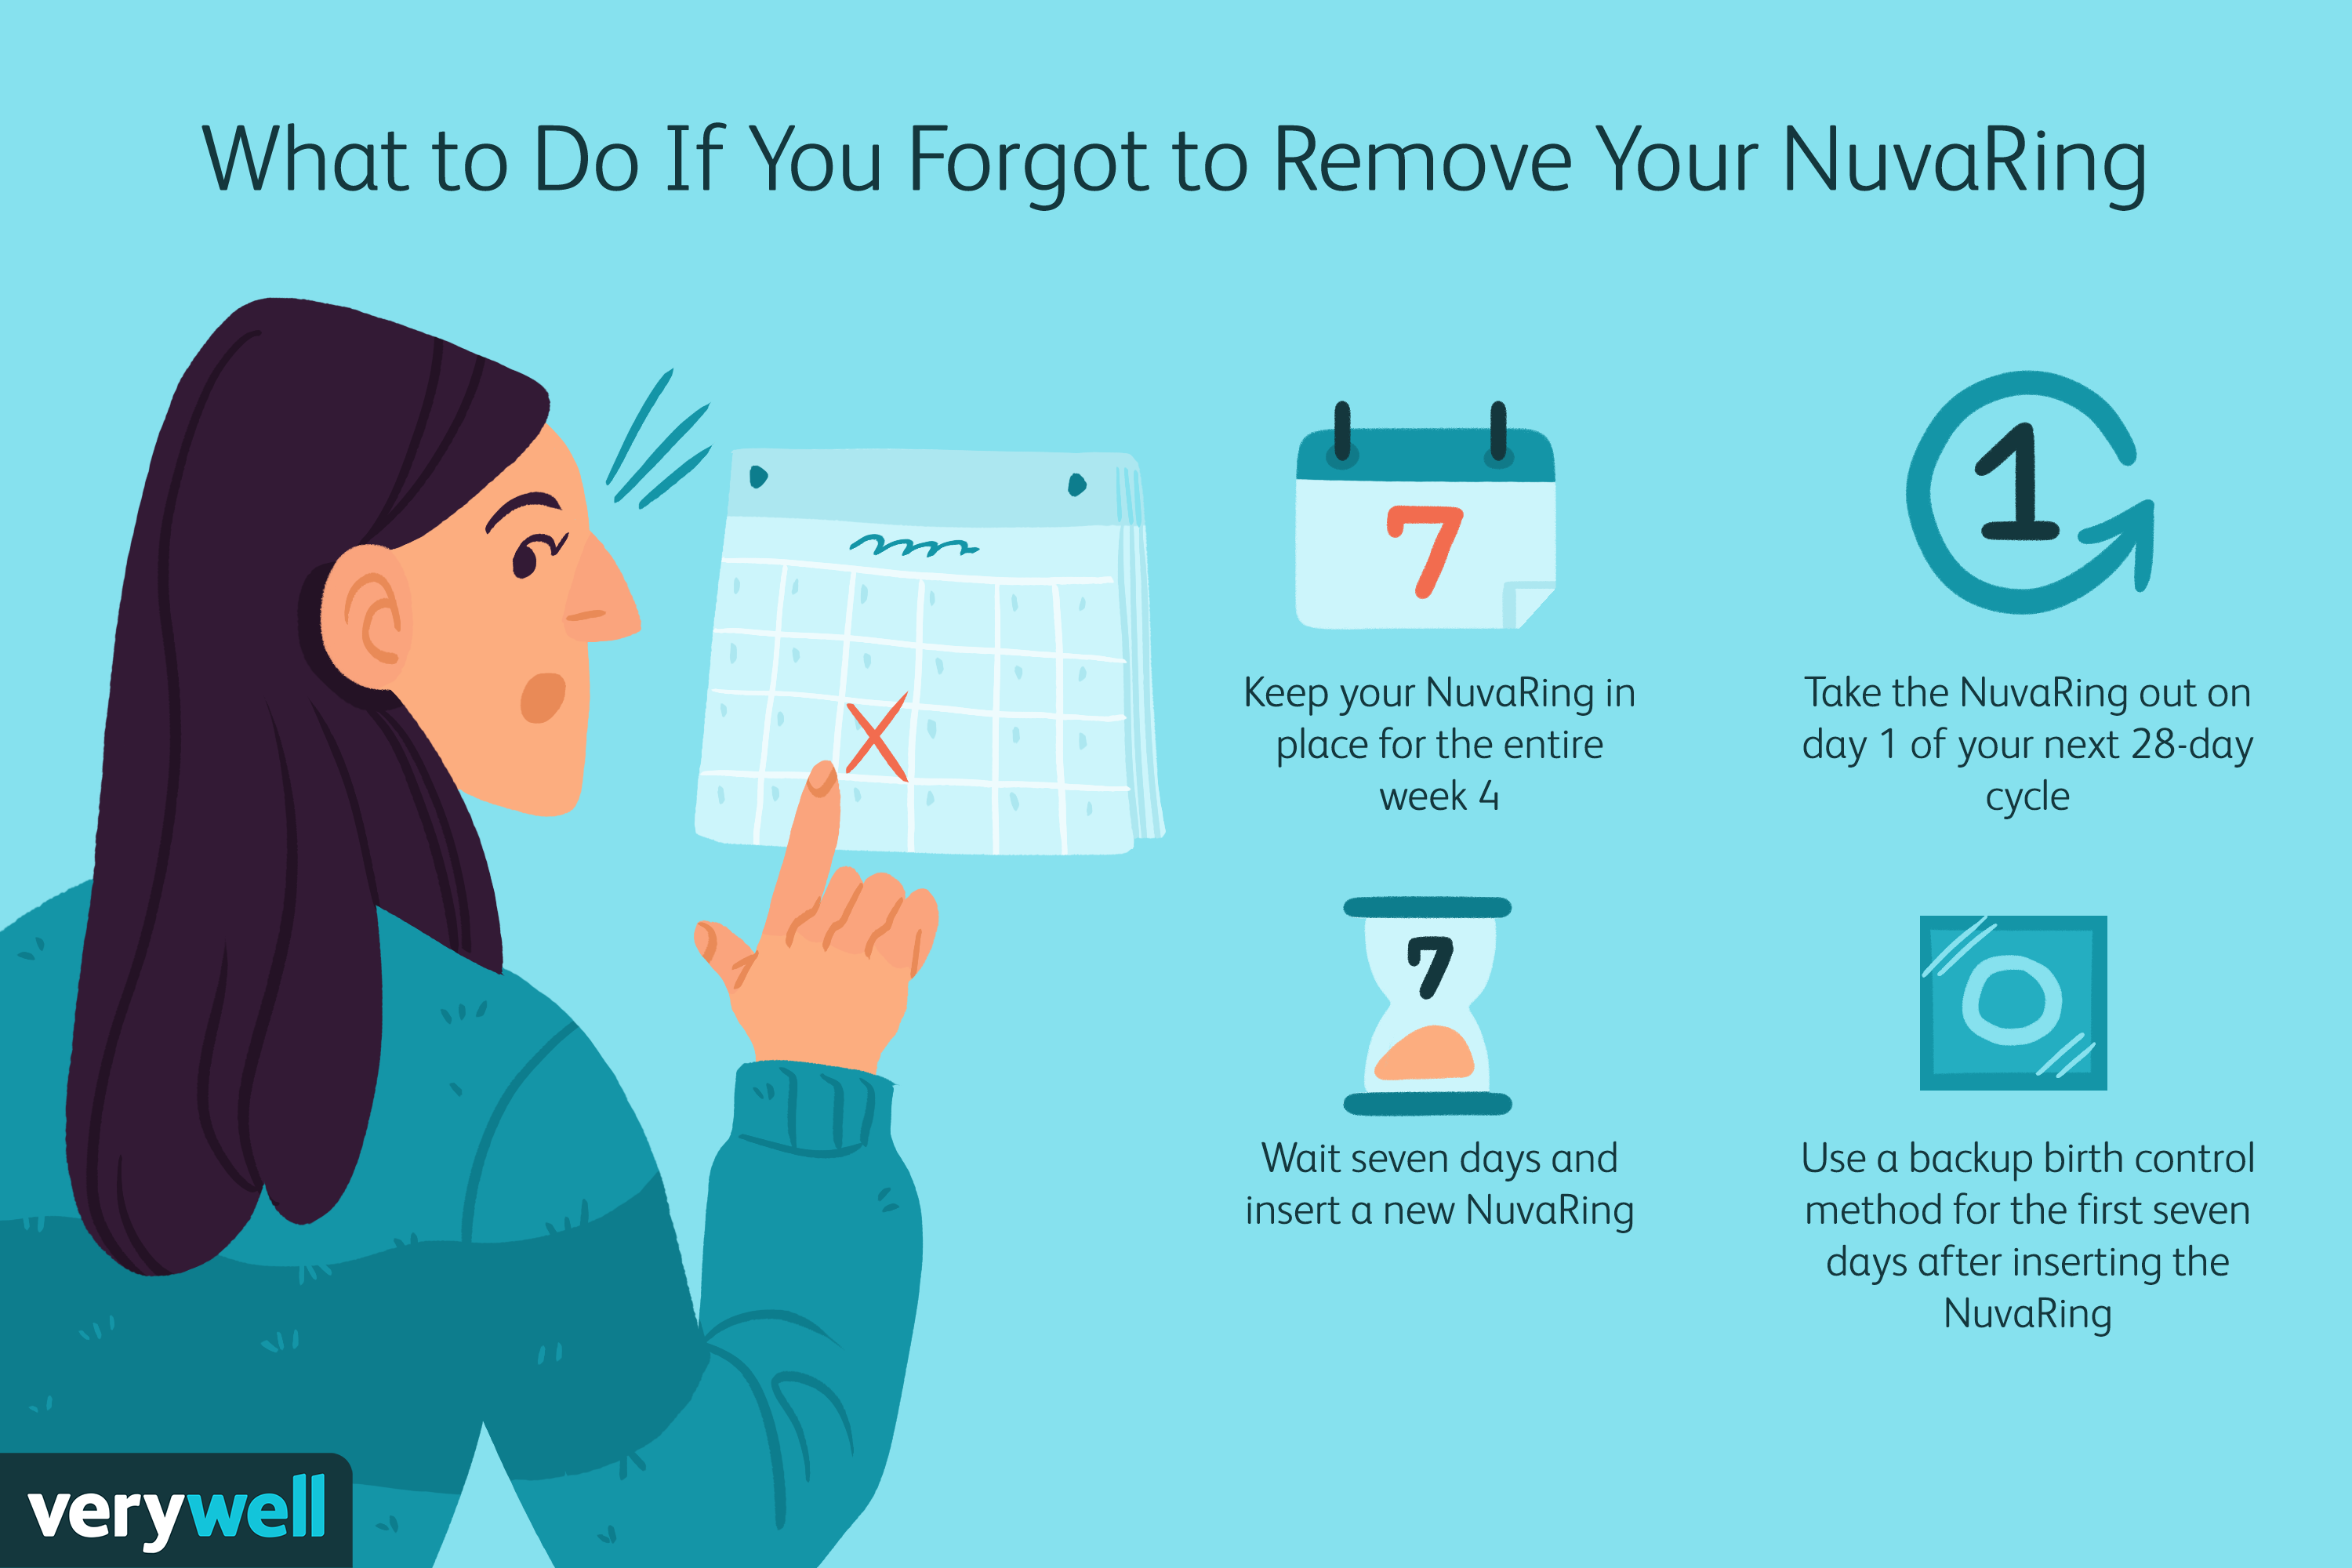 forgot to remove nuvaring